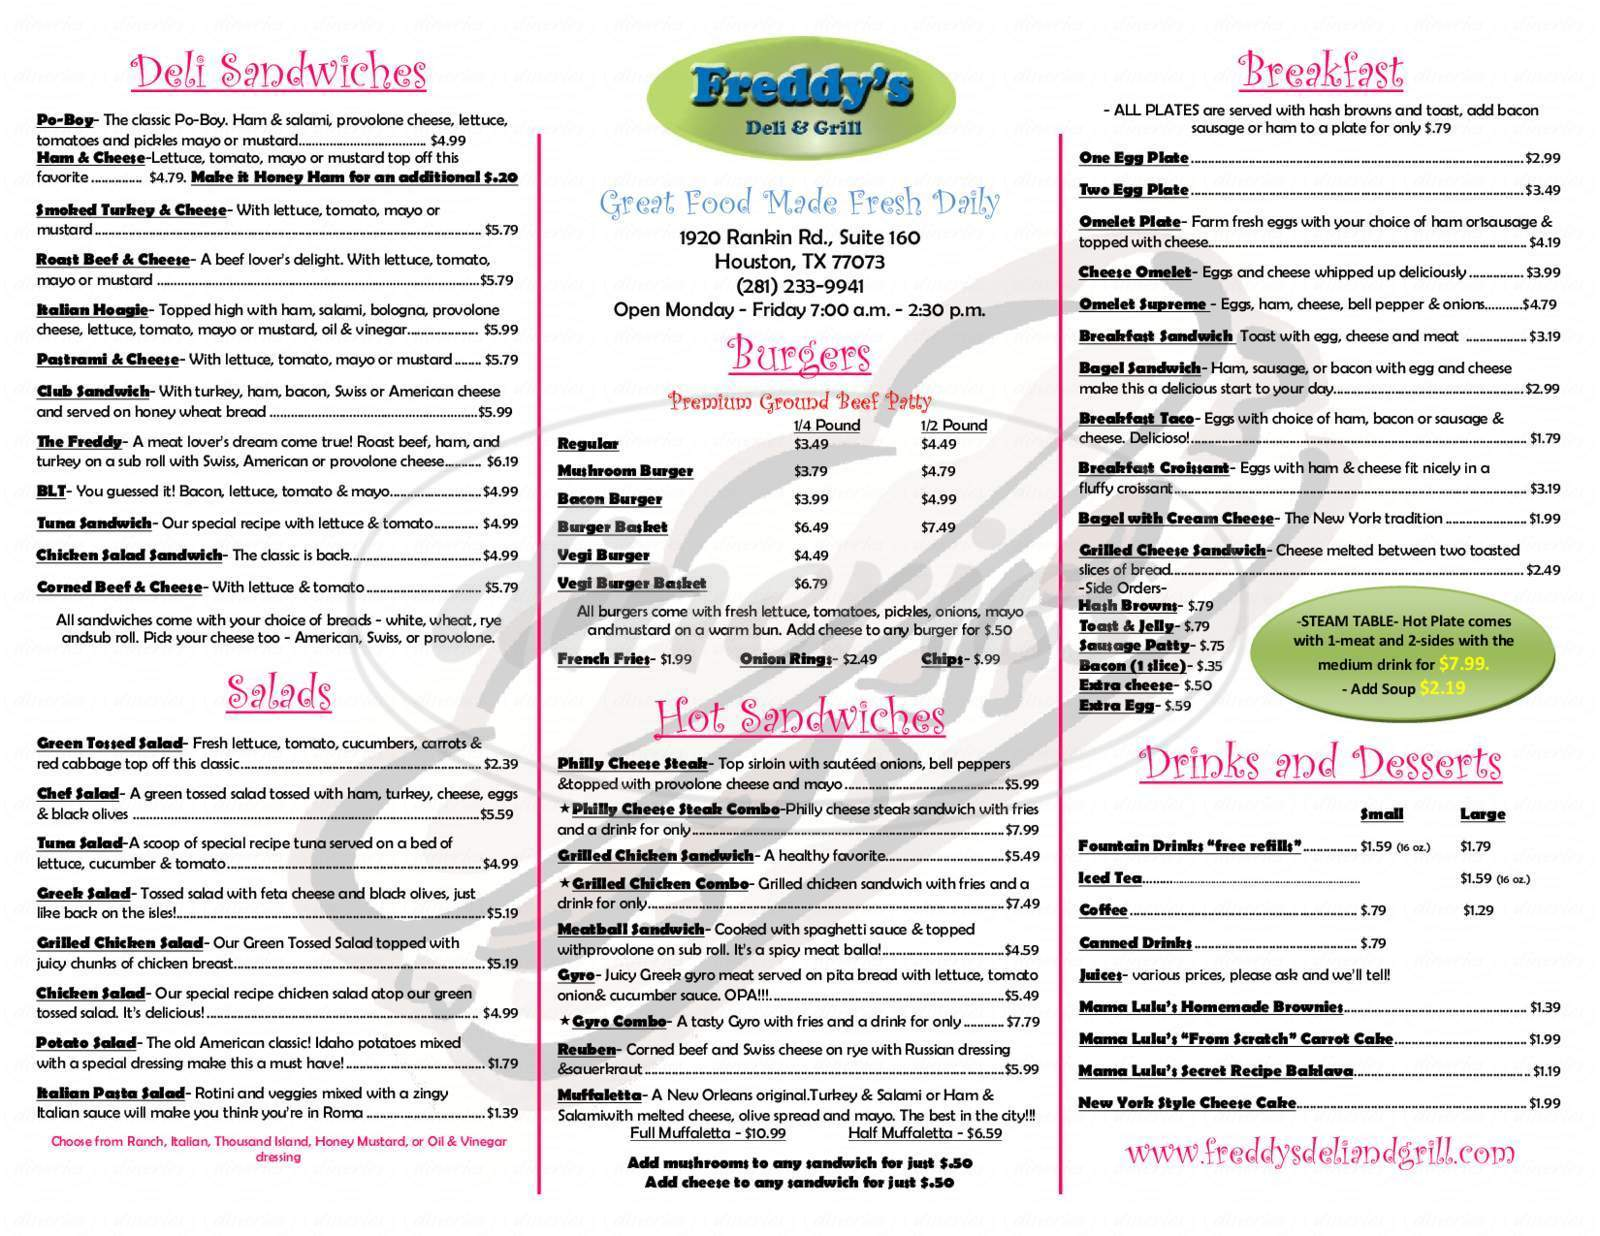 menu for Freddy's Deli and Grill